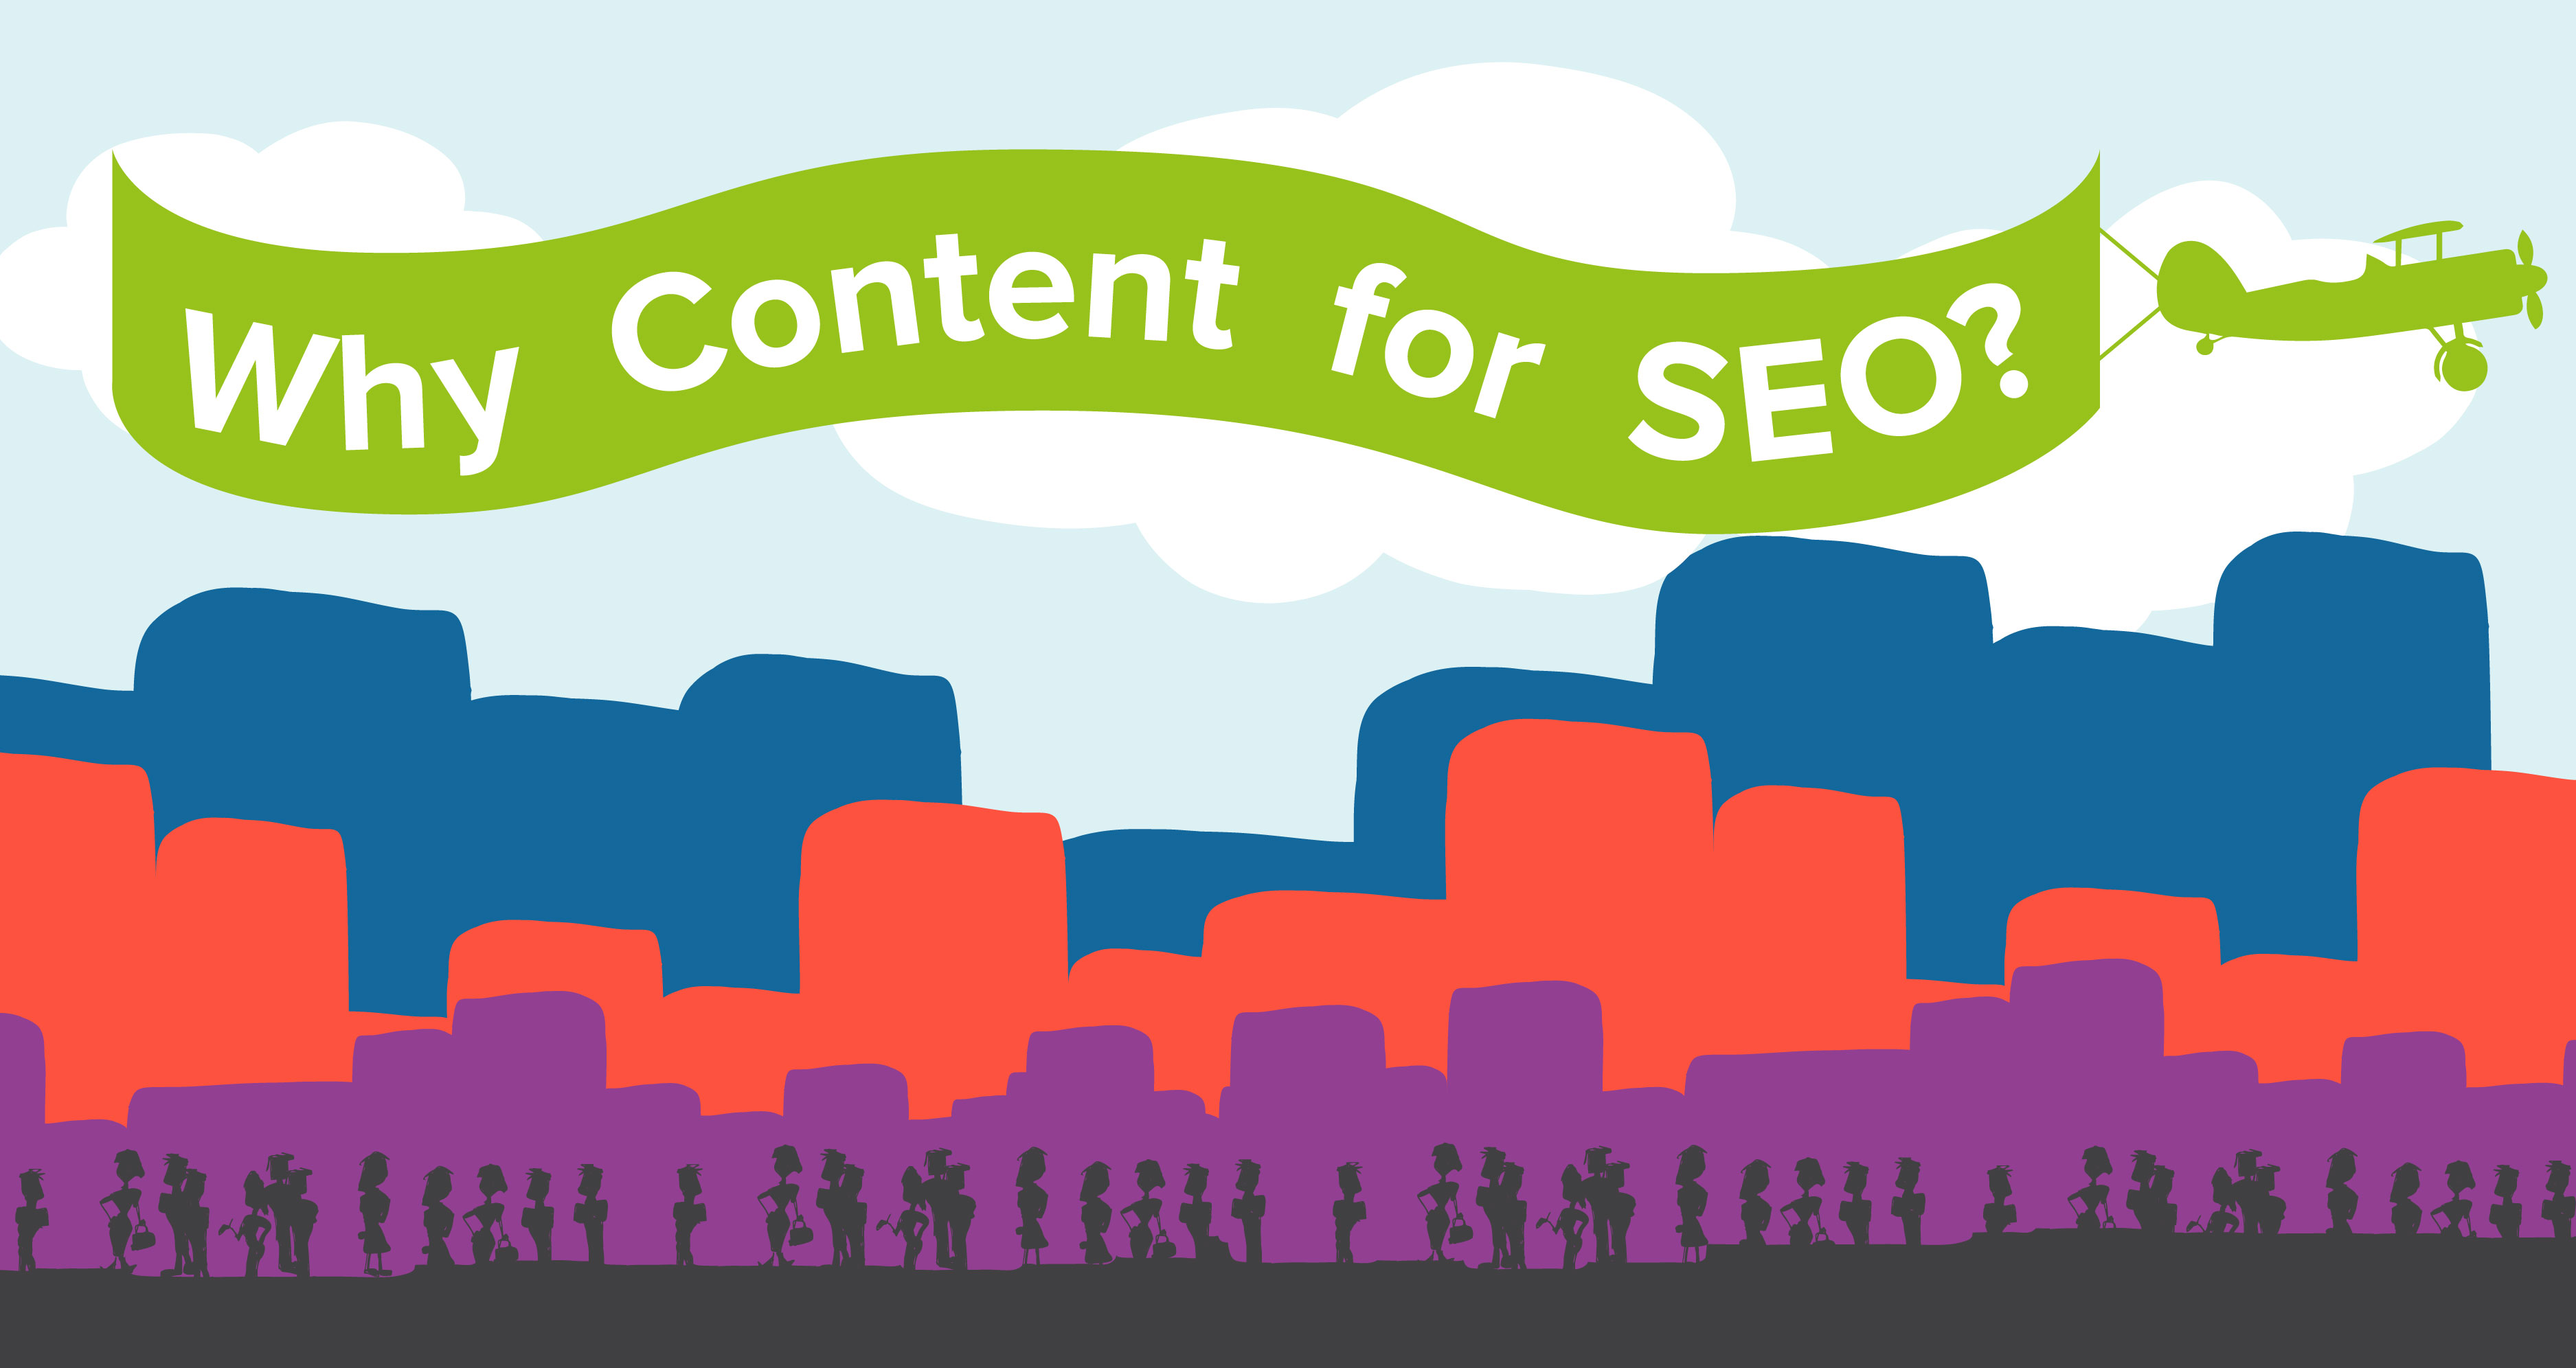 Content for SEO in 2015